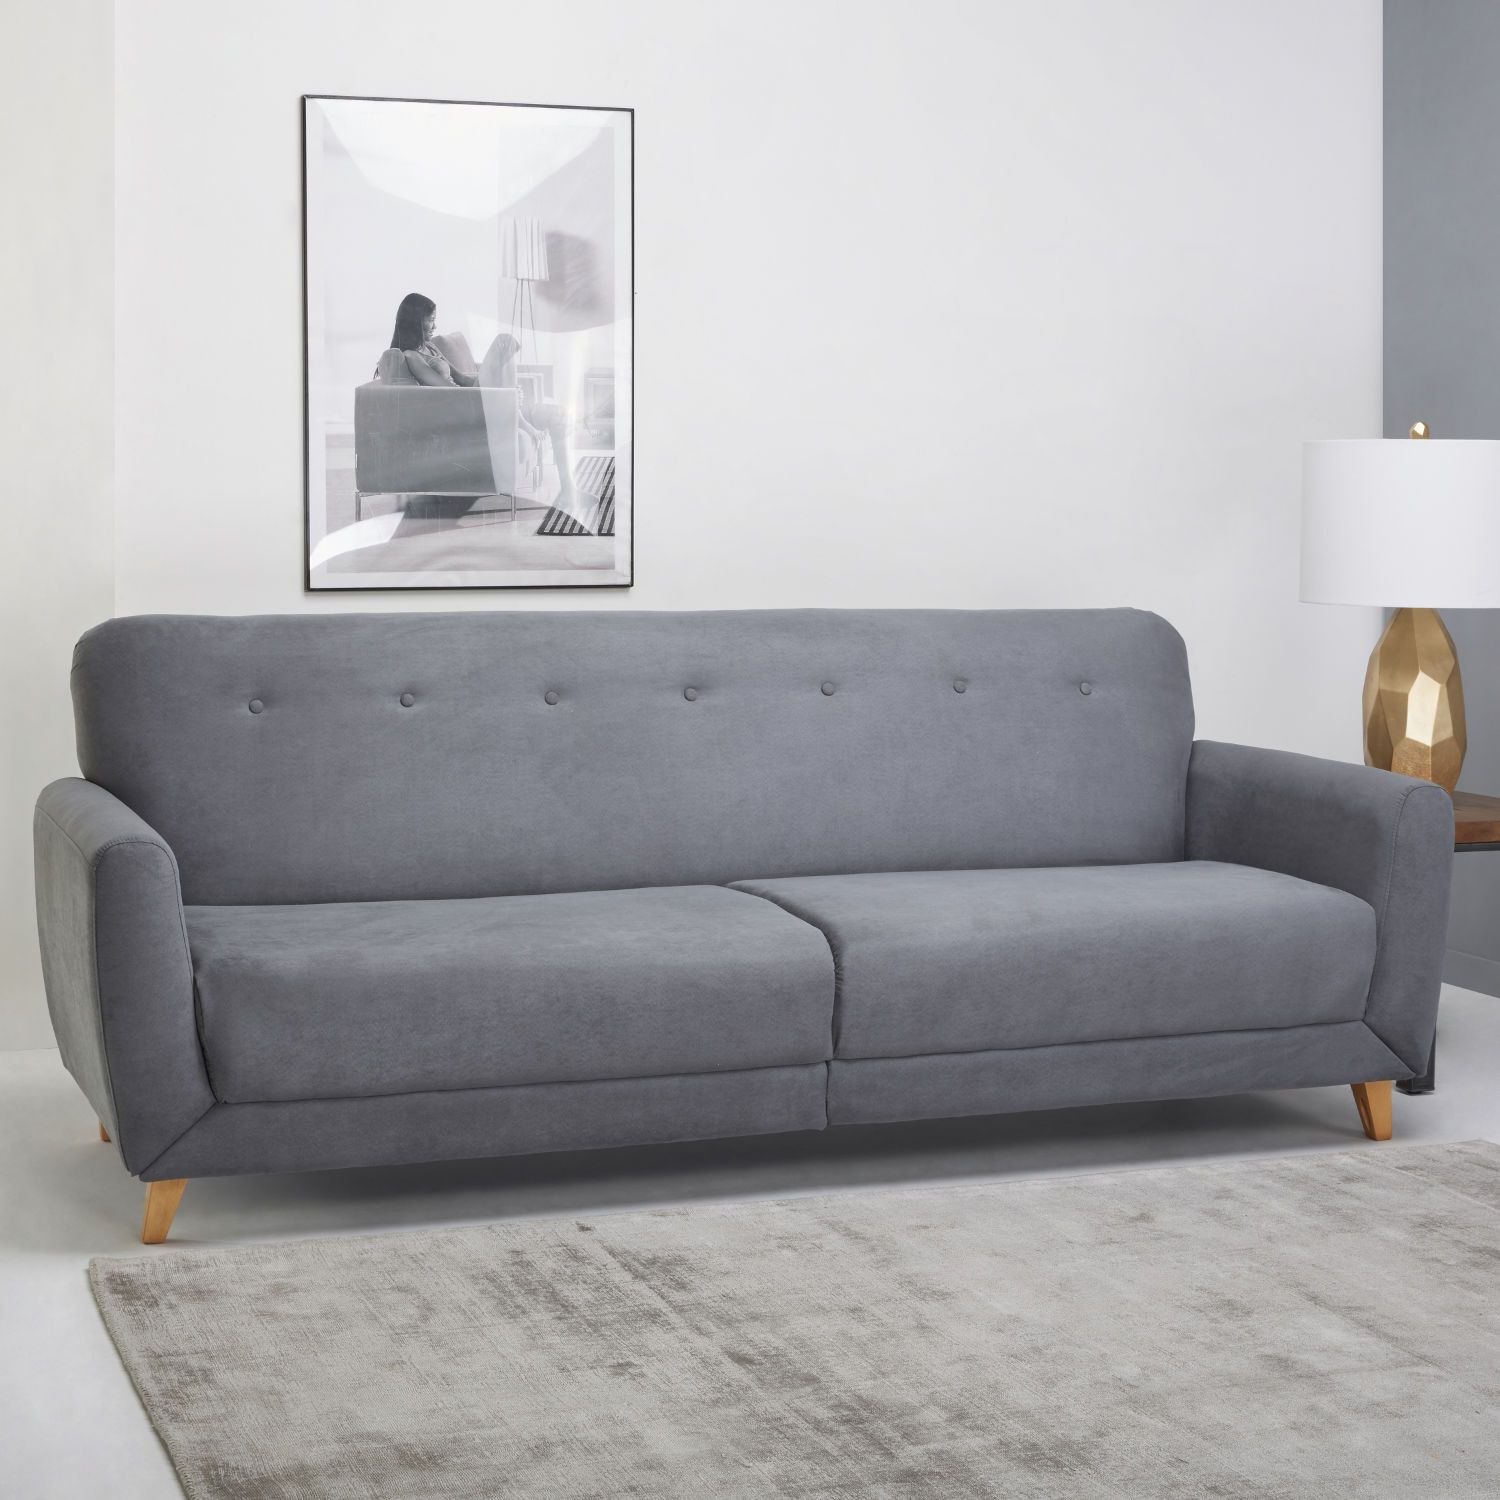 Sydney 3 Seater Fabric Sofa Bed Next Day Delivery Sydney 3 Seater Fabric Sofa Bed Small Double When A Bed Small Sofa Bed Fabric Sofa Bed Upholstered Sofa